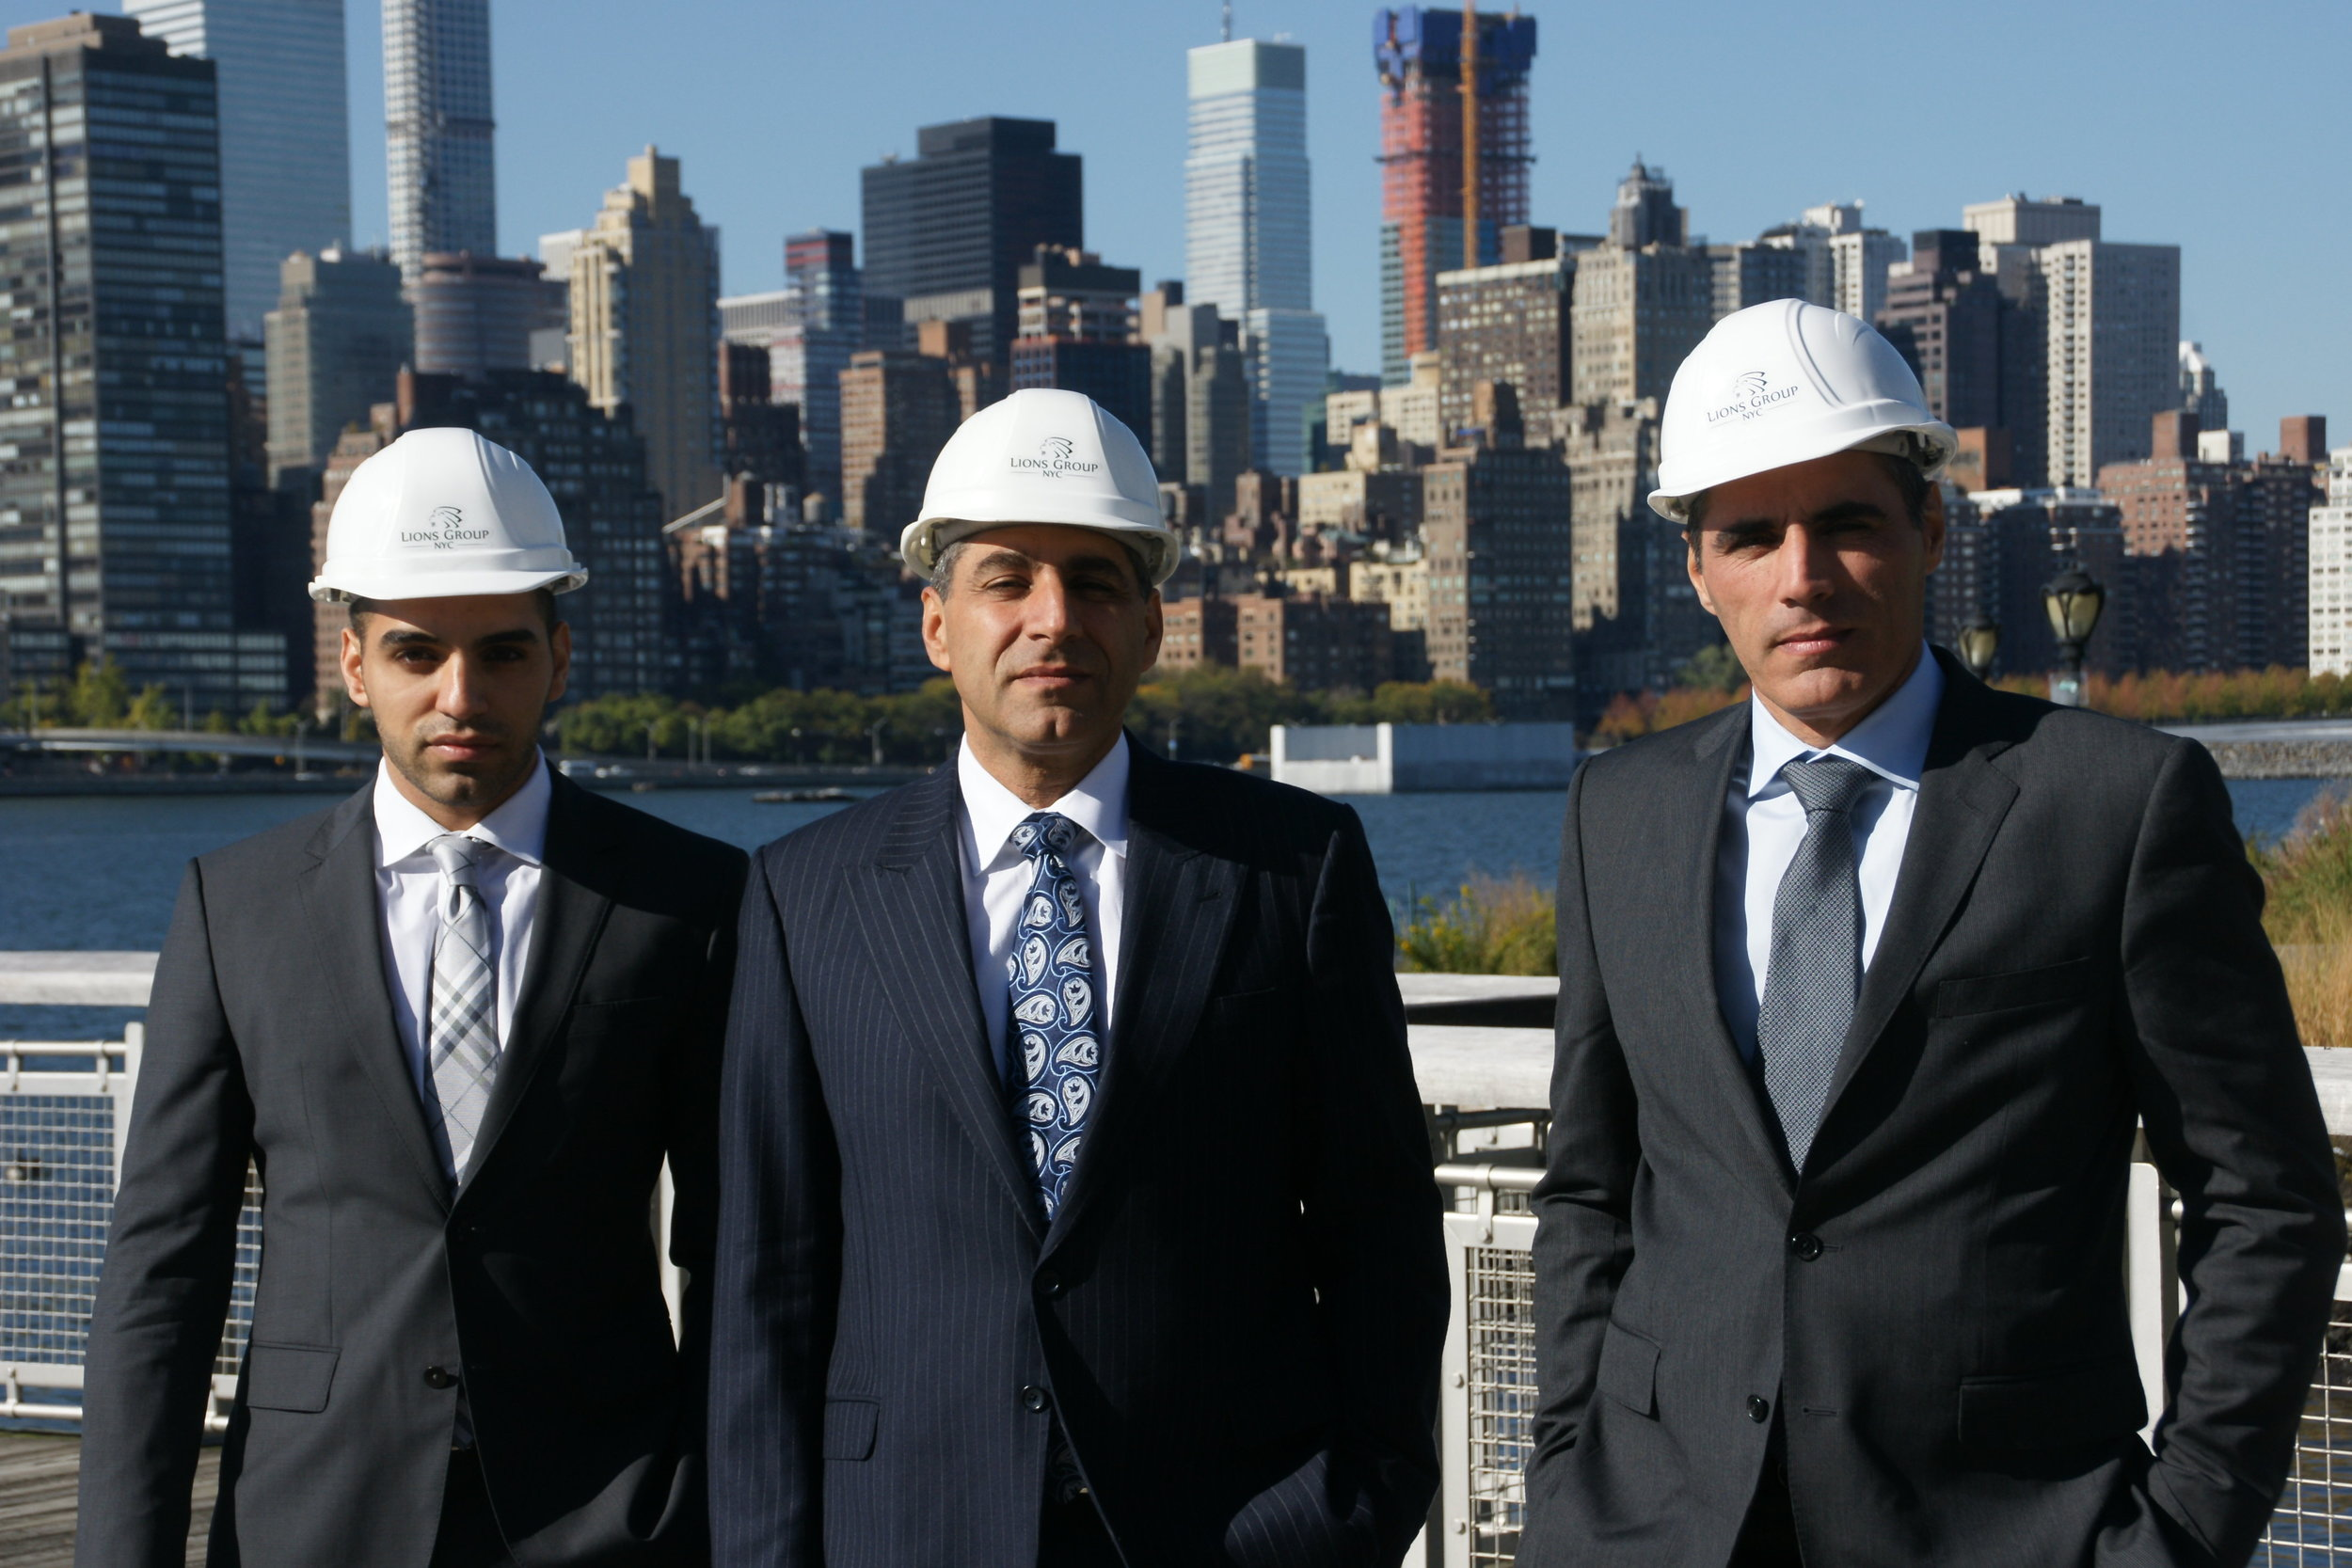 (From left) The Shirian family braintrust behind Lions Group